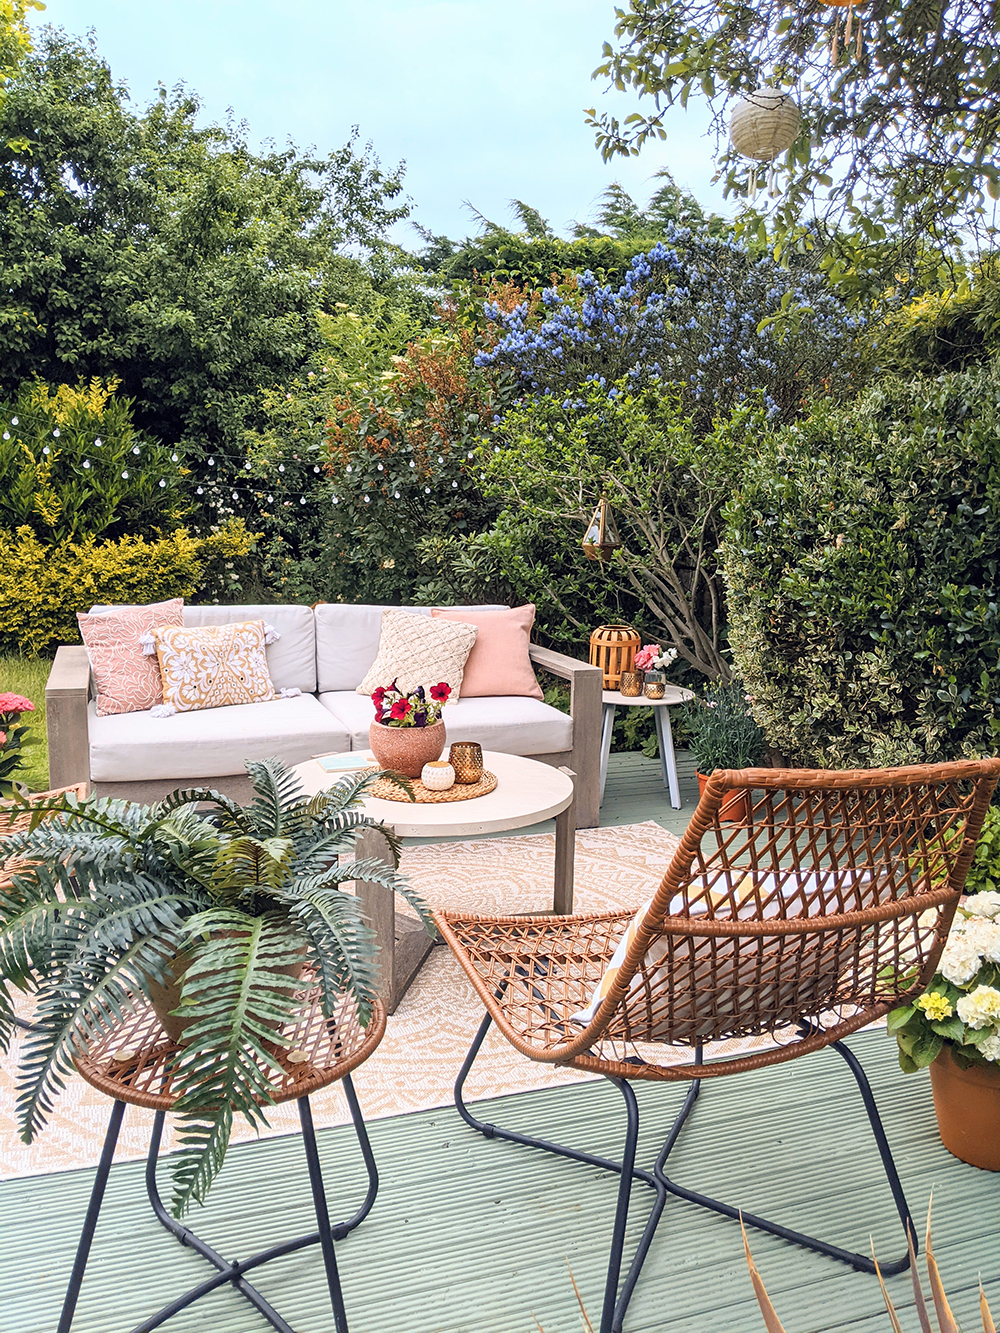 garden sofa and rattan chairs on green willow deck